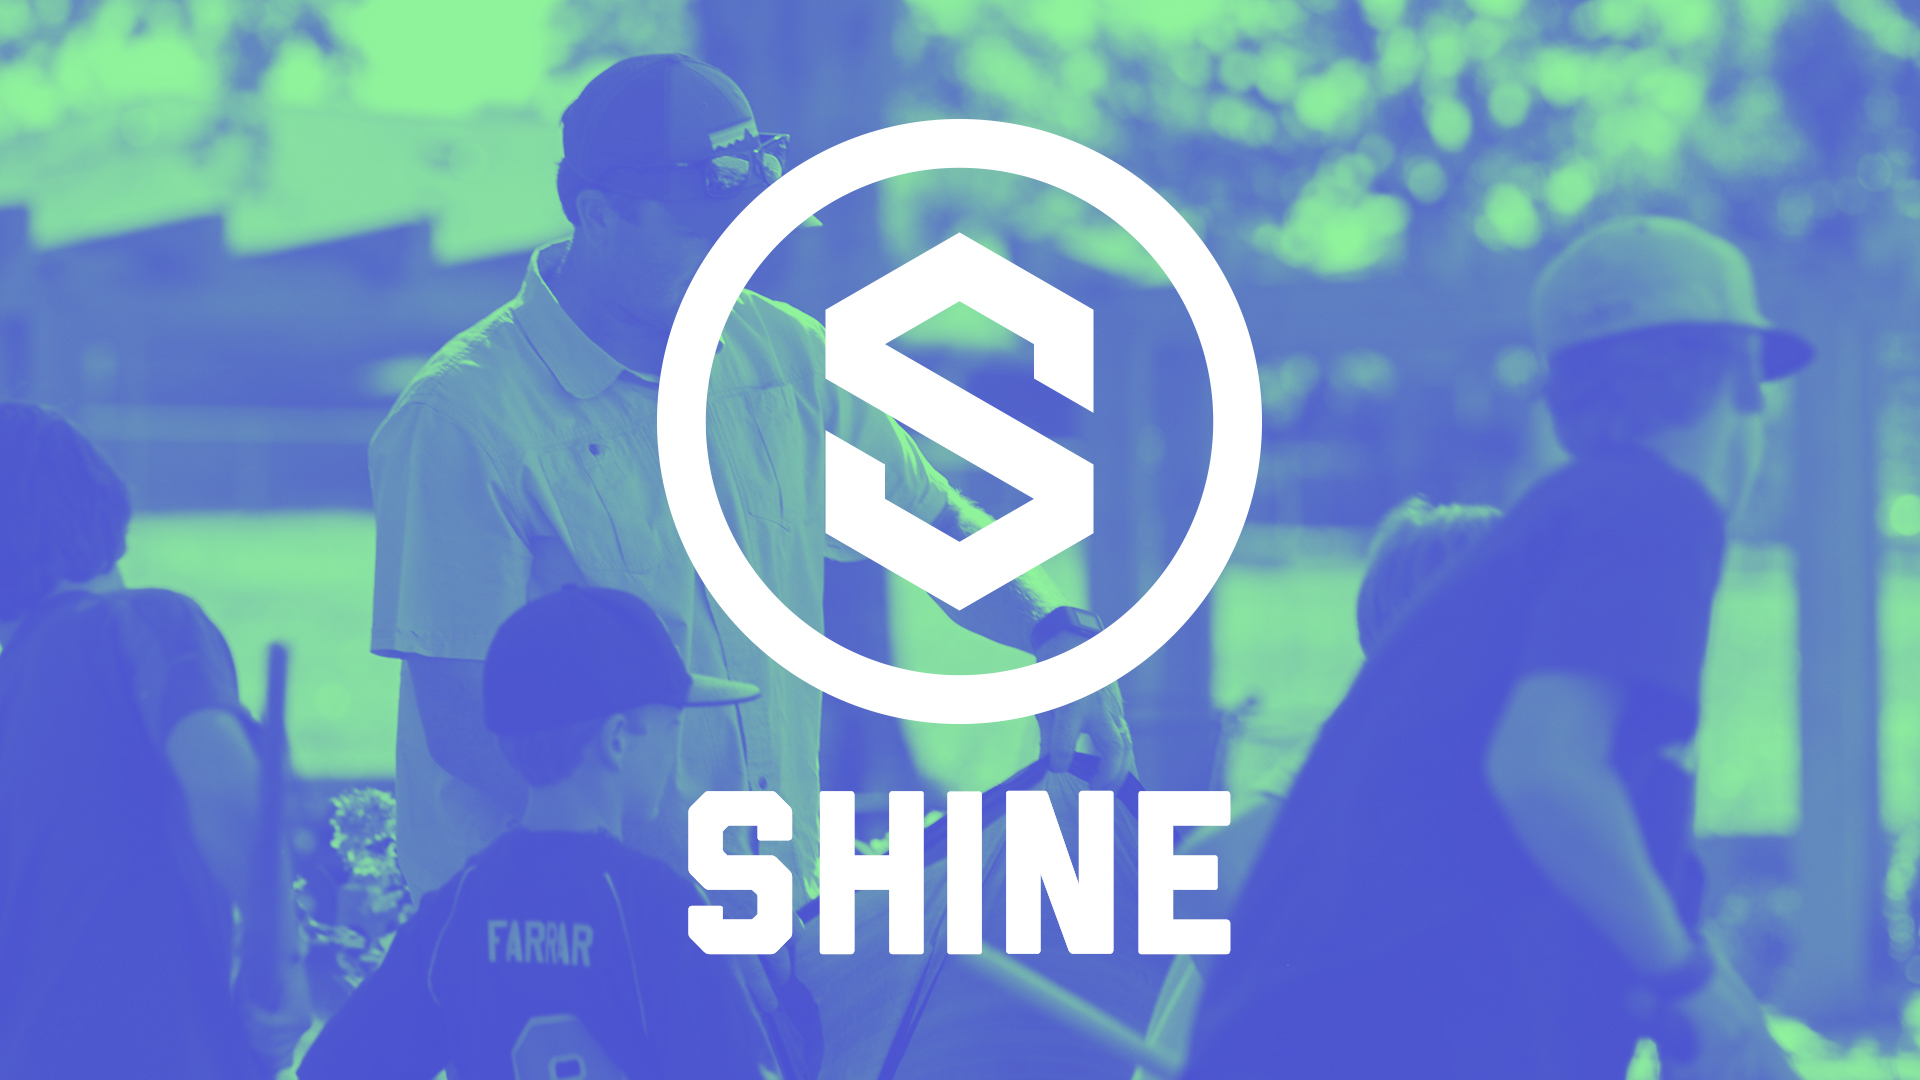 Shine: Serve Your State